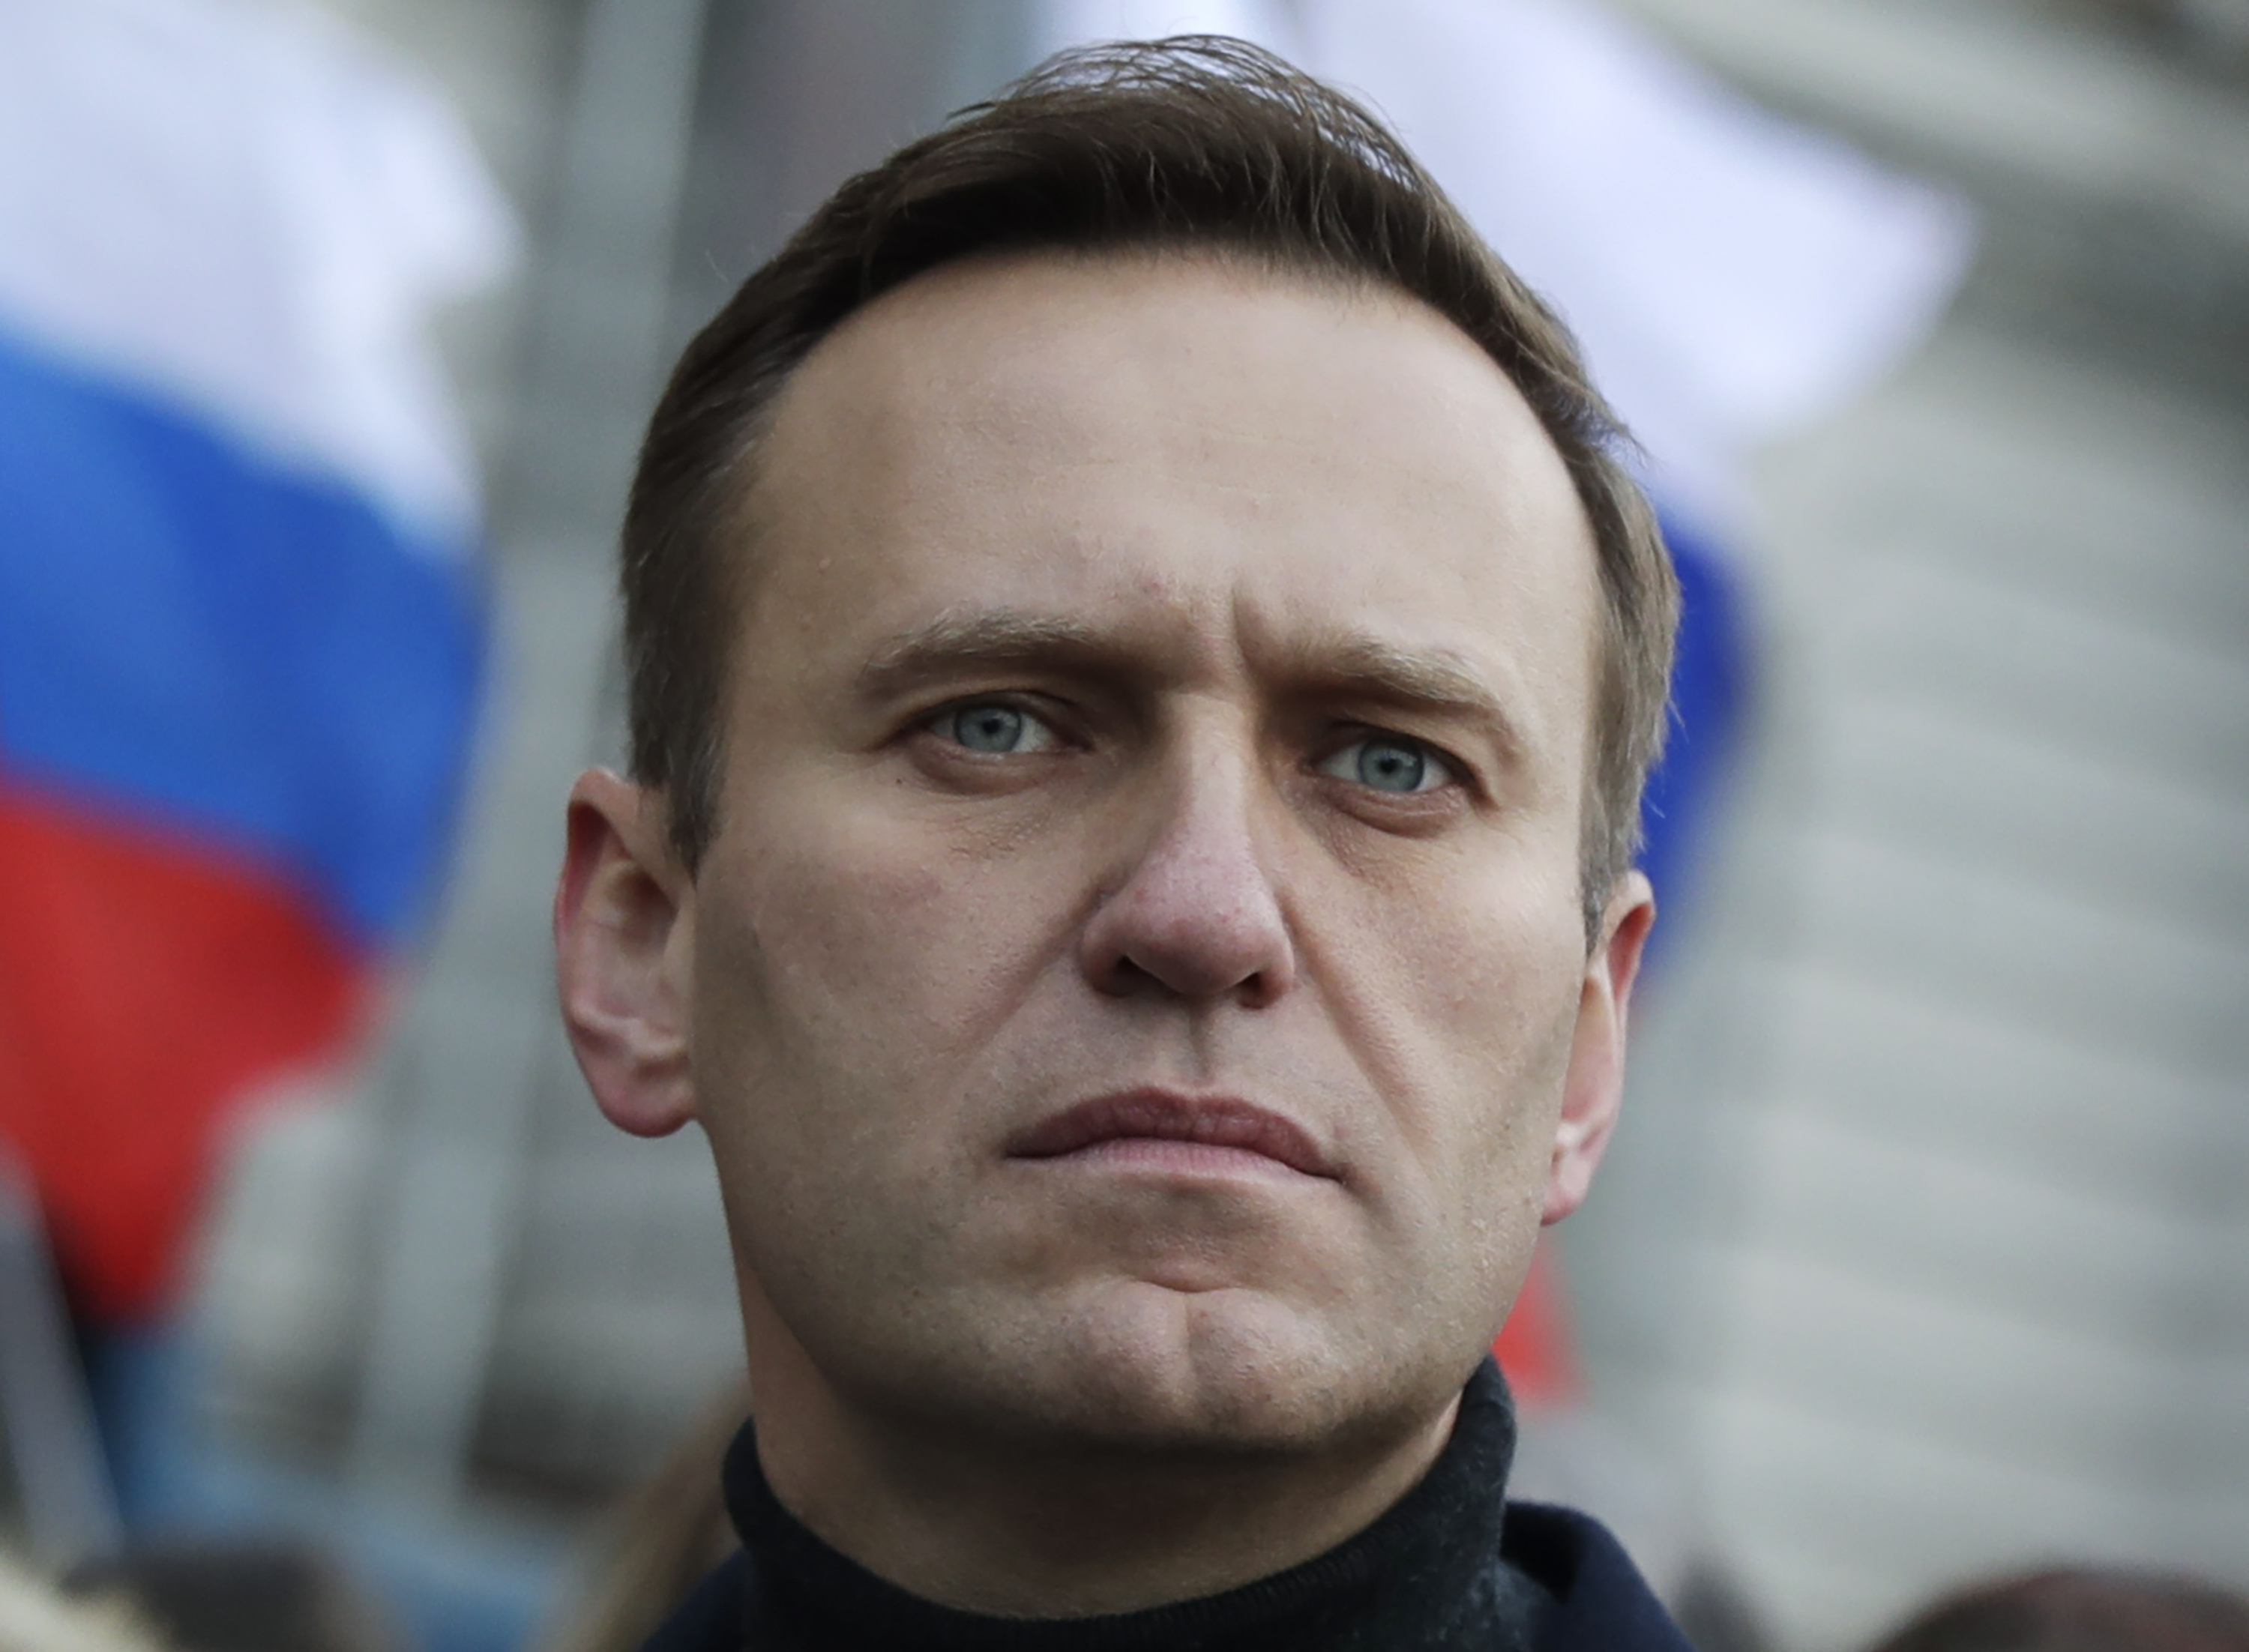 Russian Opposition Politician Alexei Navalny Poisoned